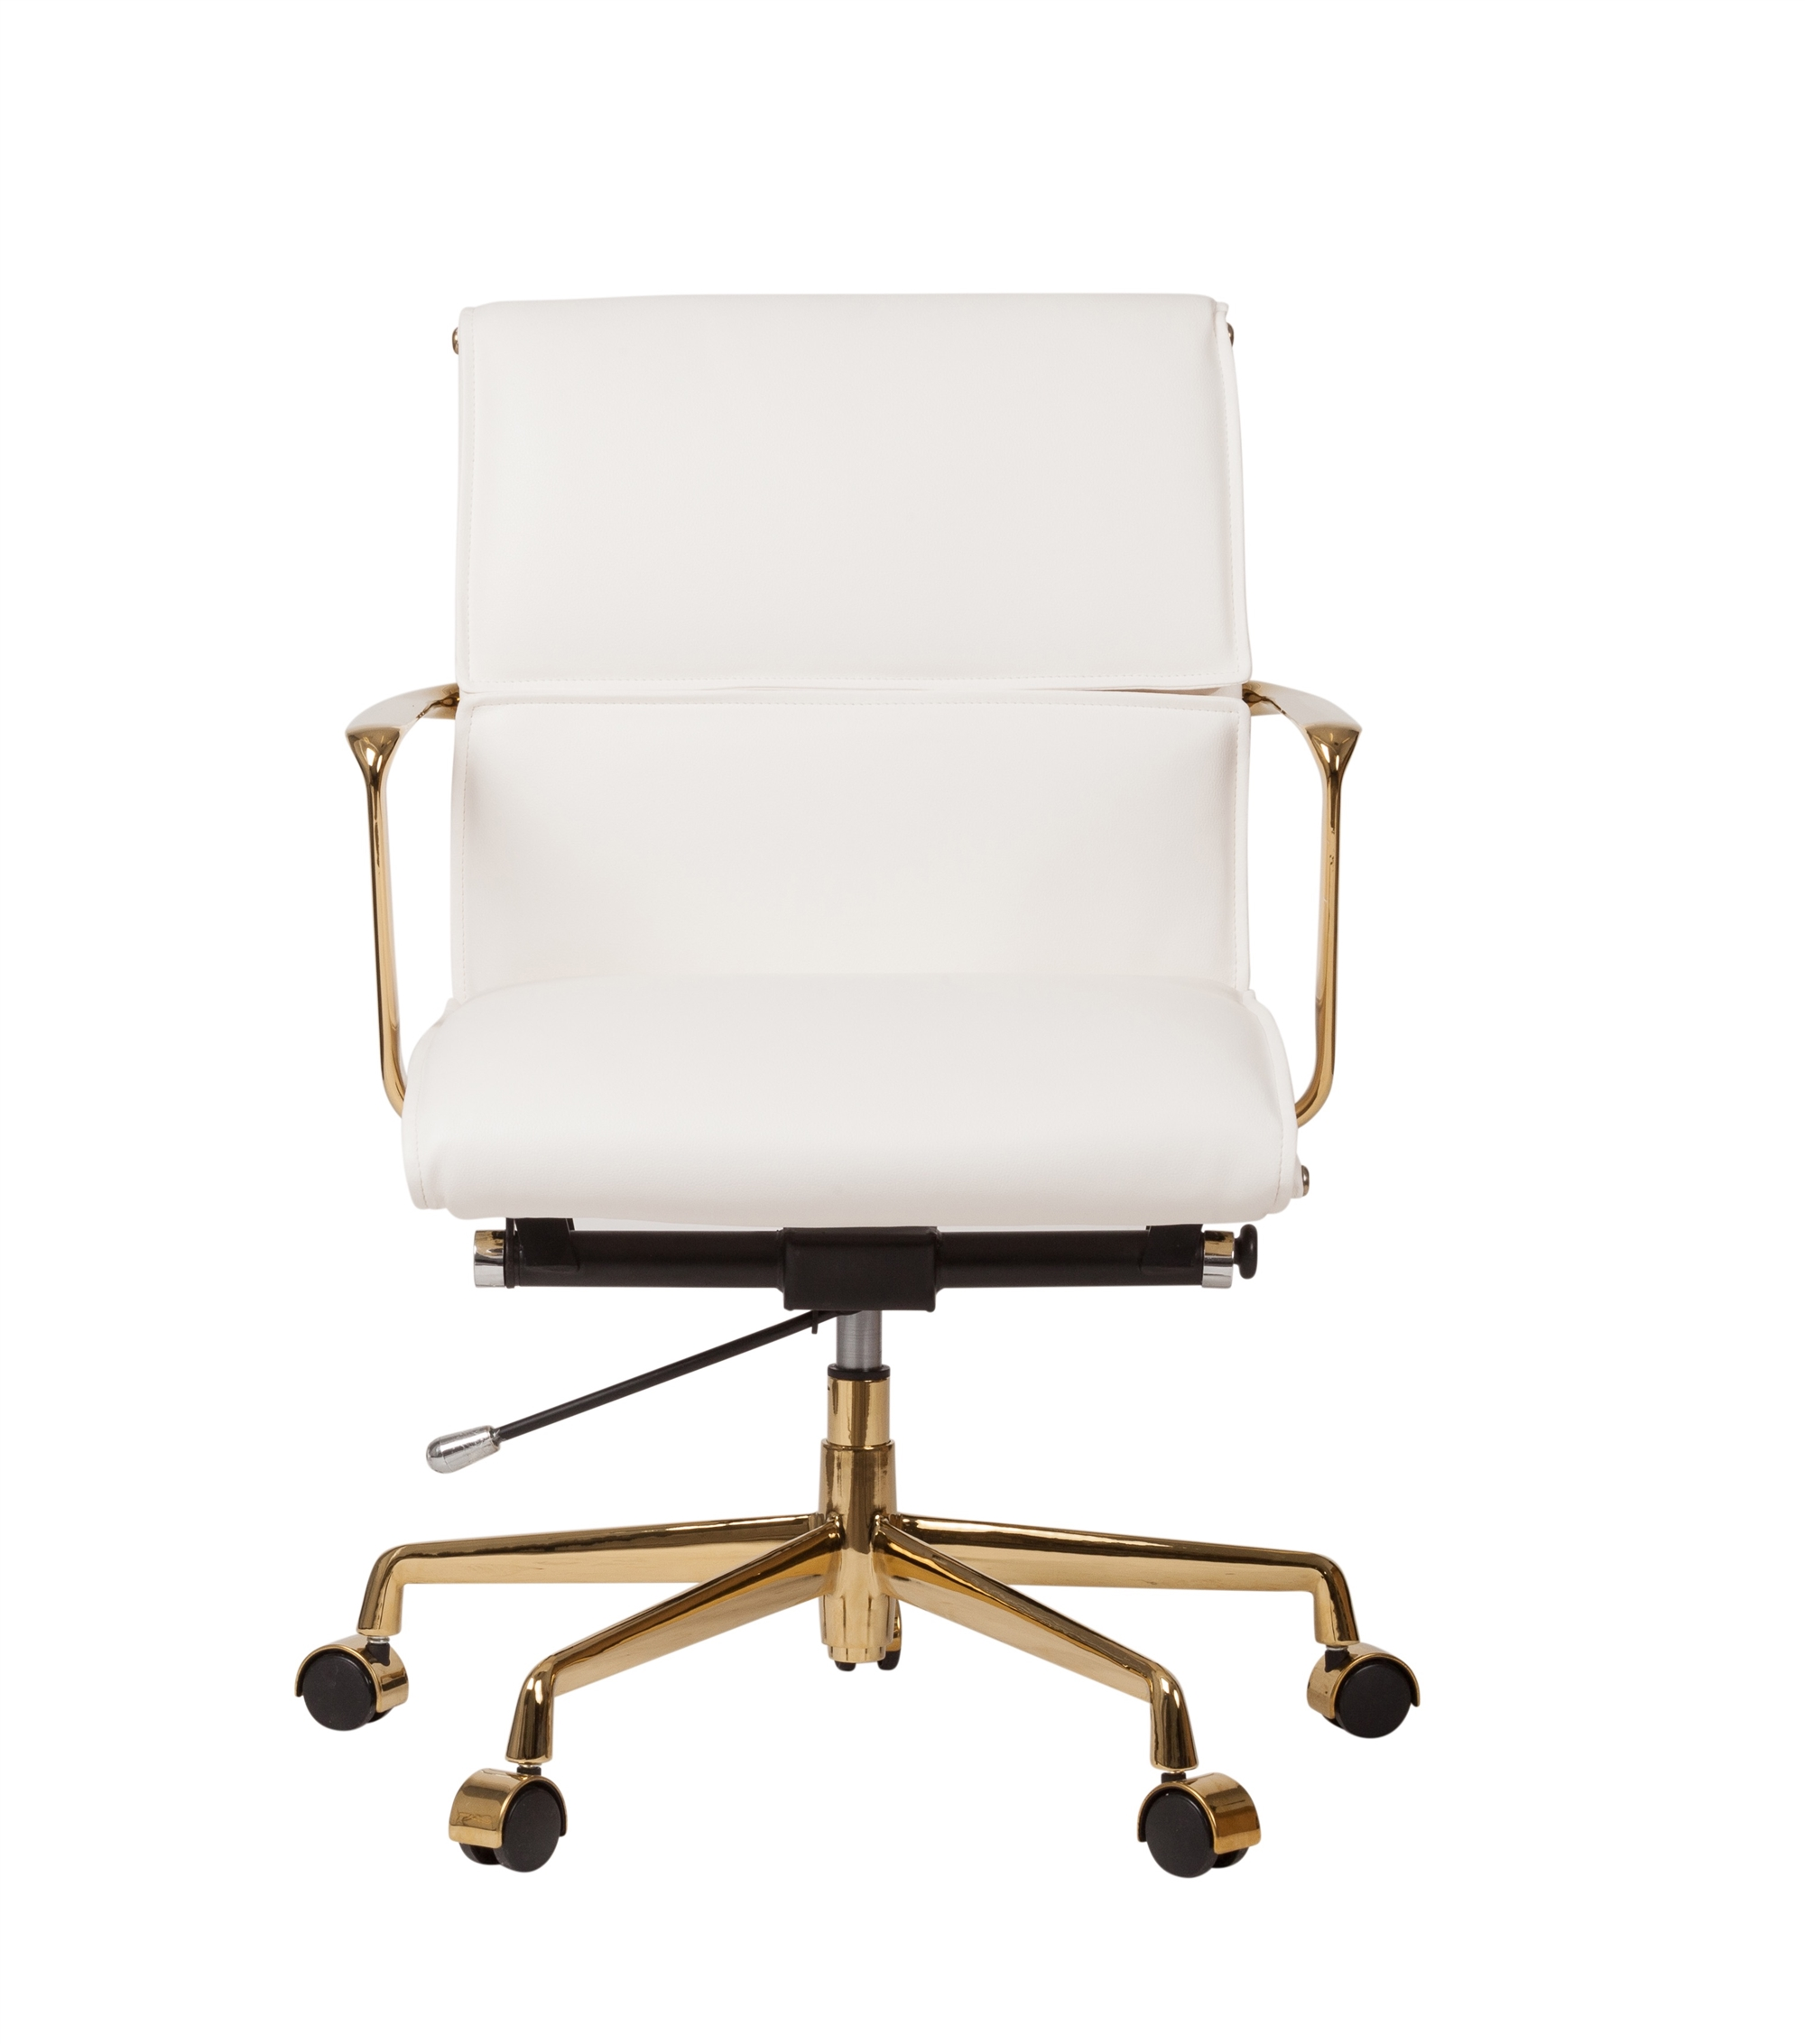 Awesome Cooper Mid Century Modern Office Chair With Gold Base White Leather Ibusinesslaw Wood Chair Design Ideas Ibusinesslaworg